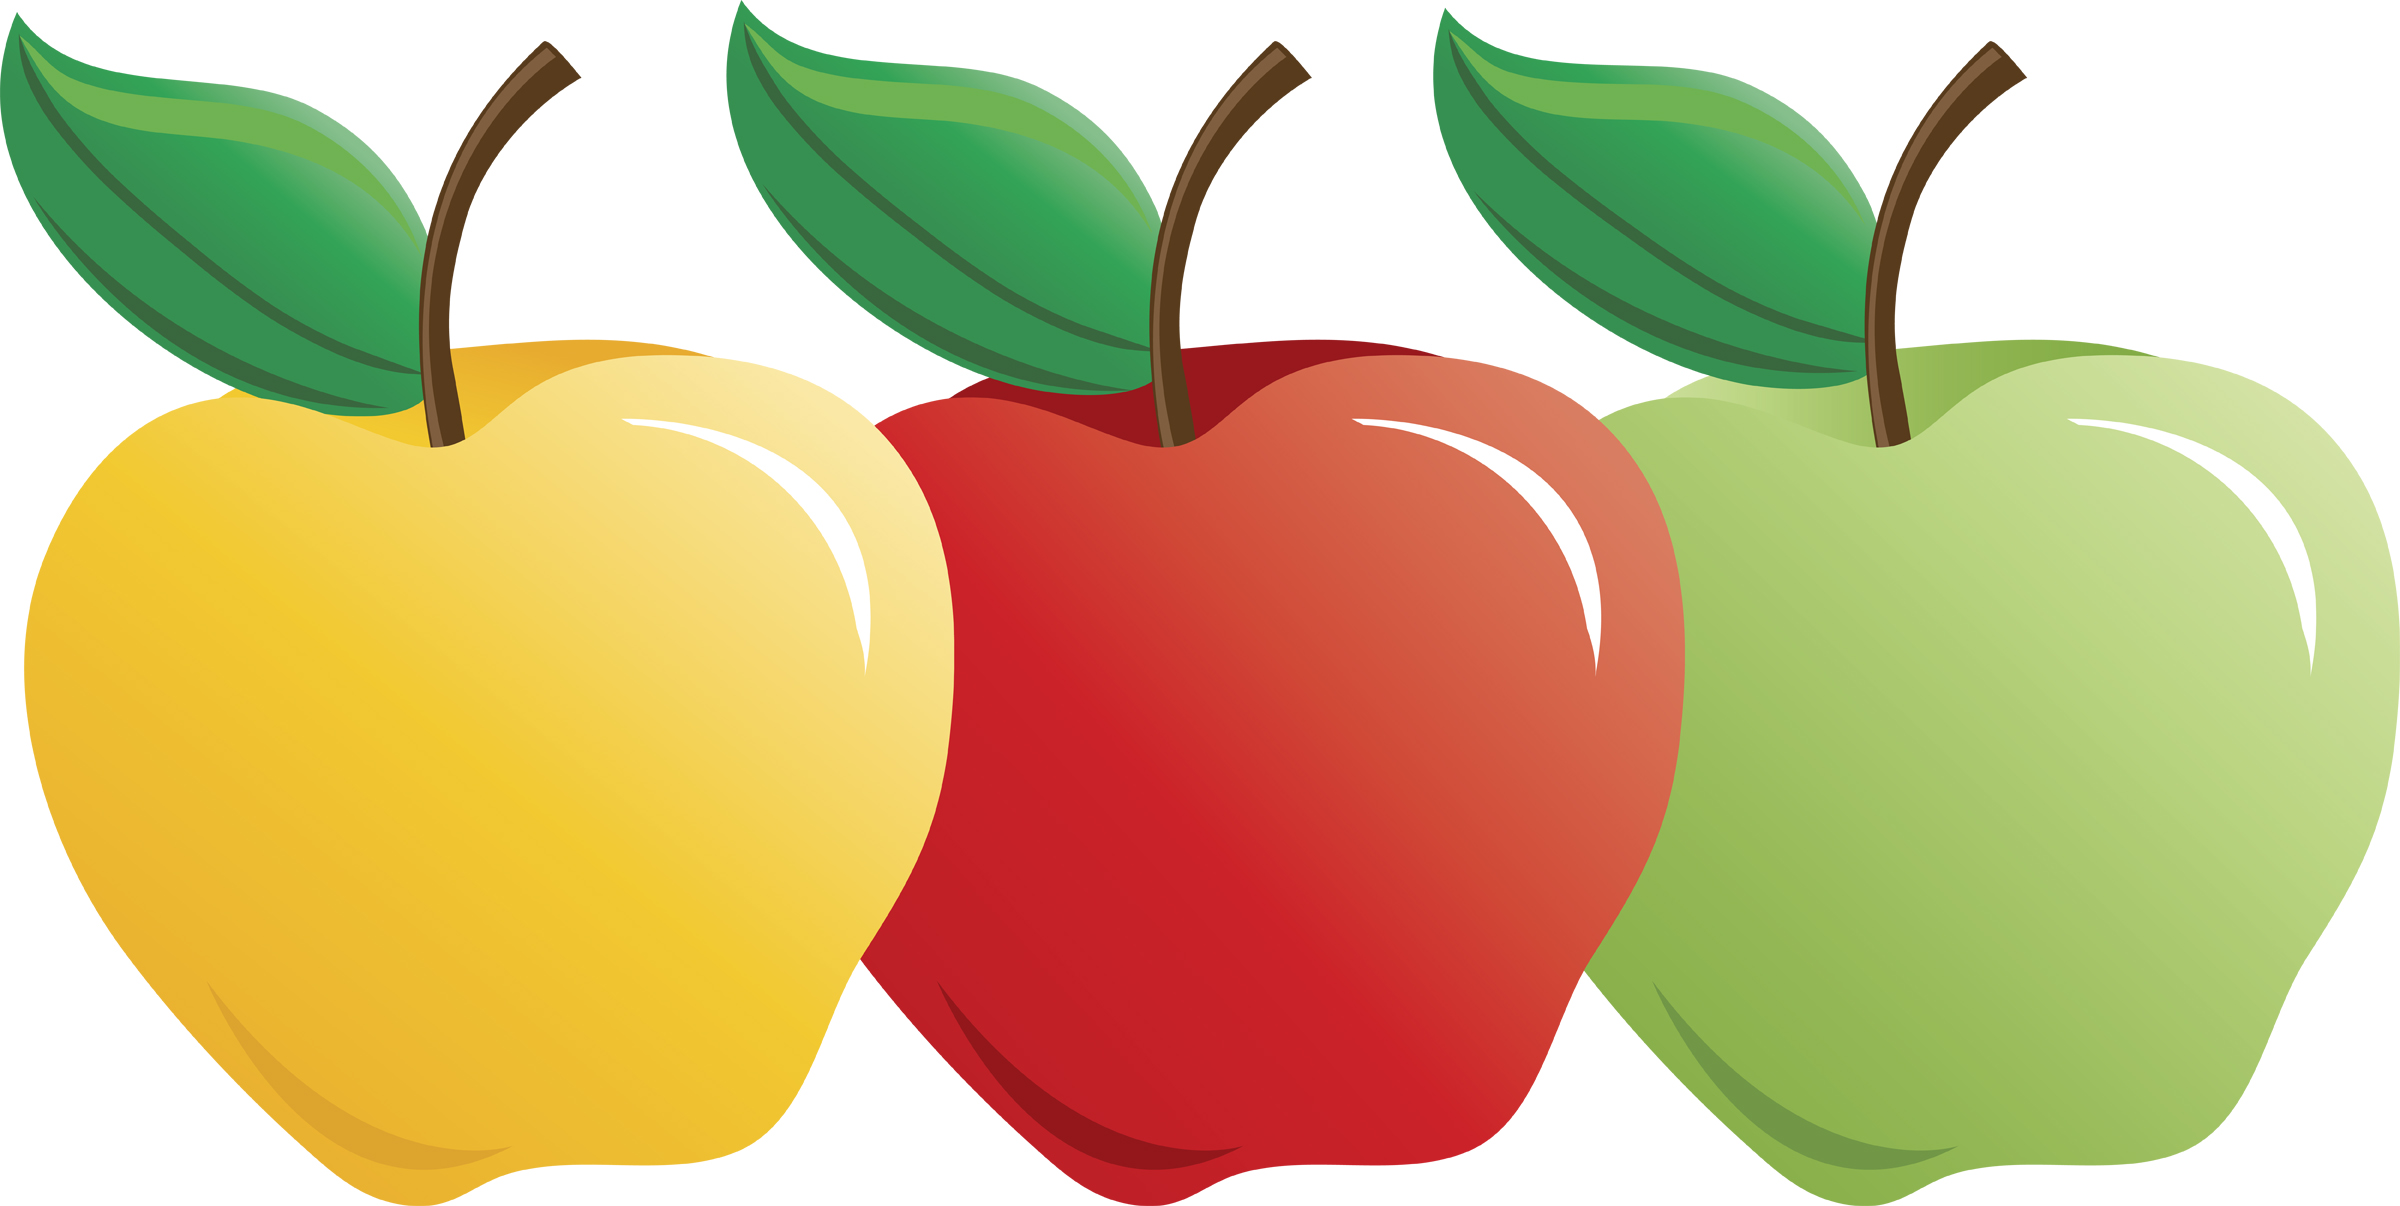 Clip art pictures of apples - .-Clip art pictures of apples - .-6